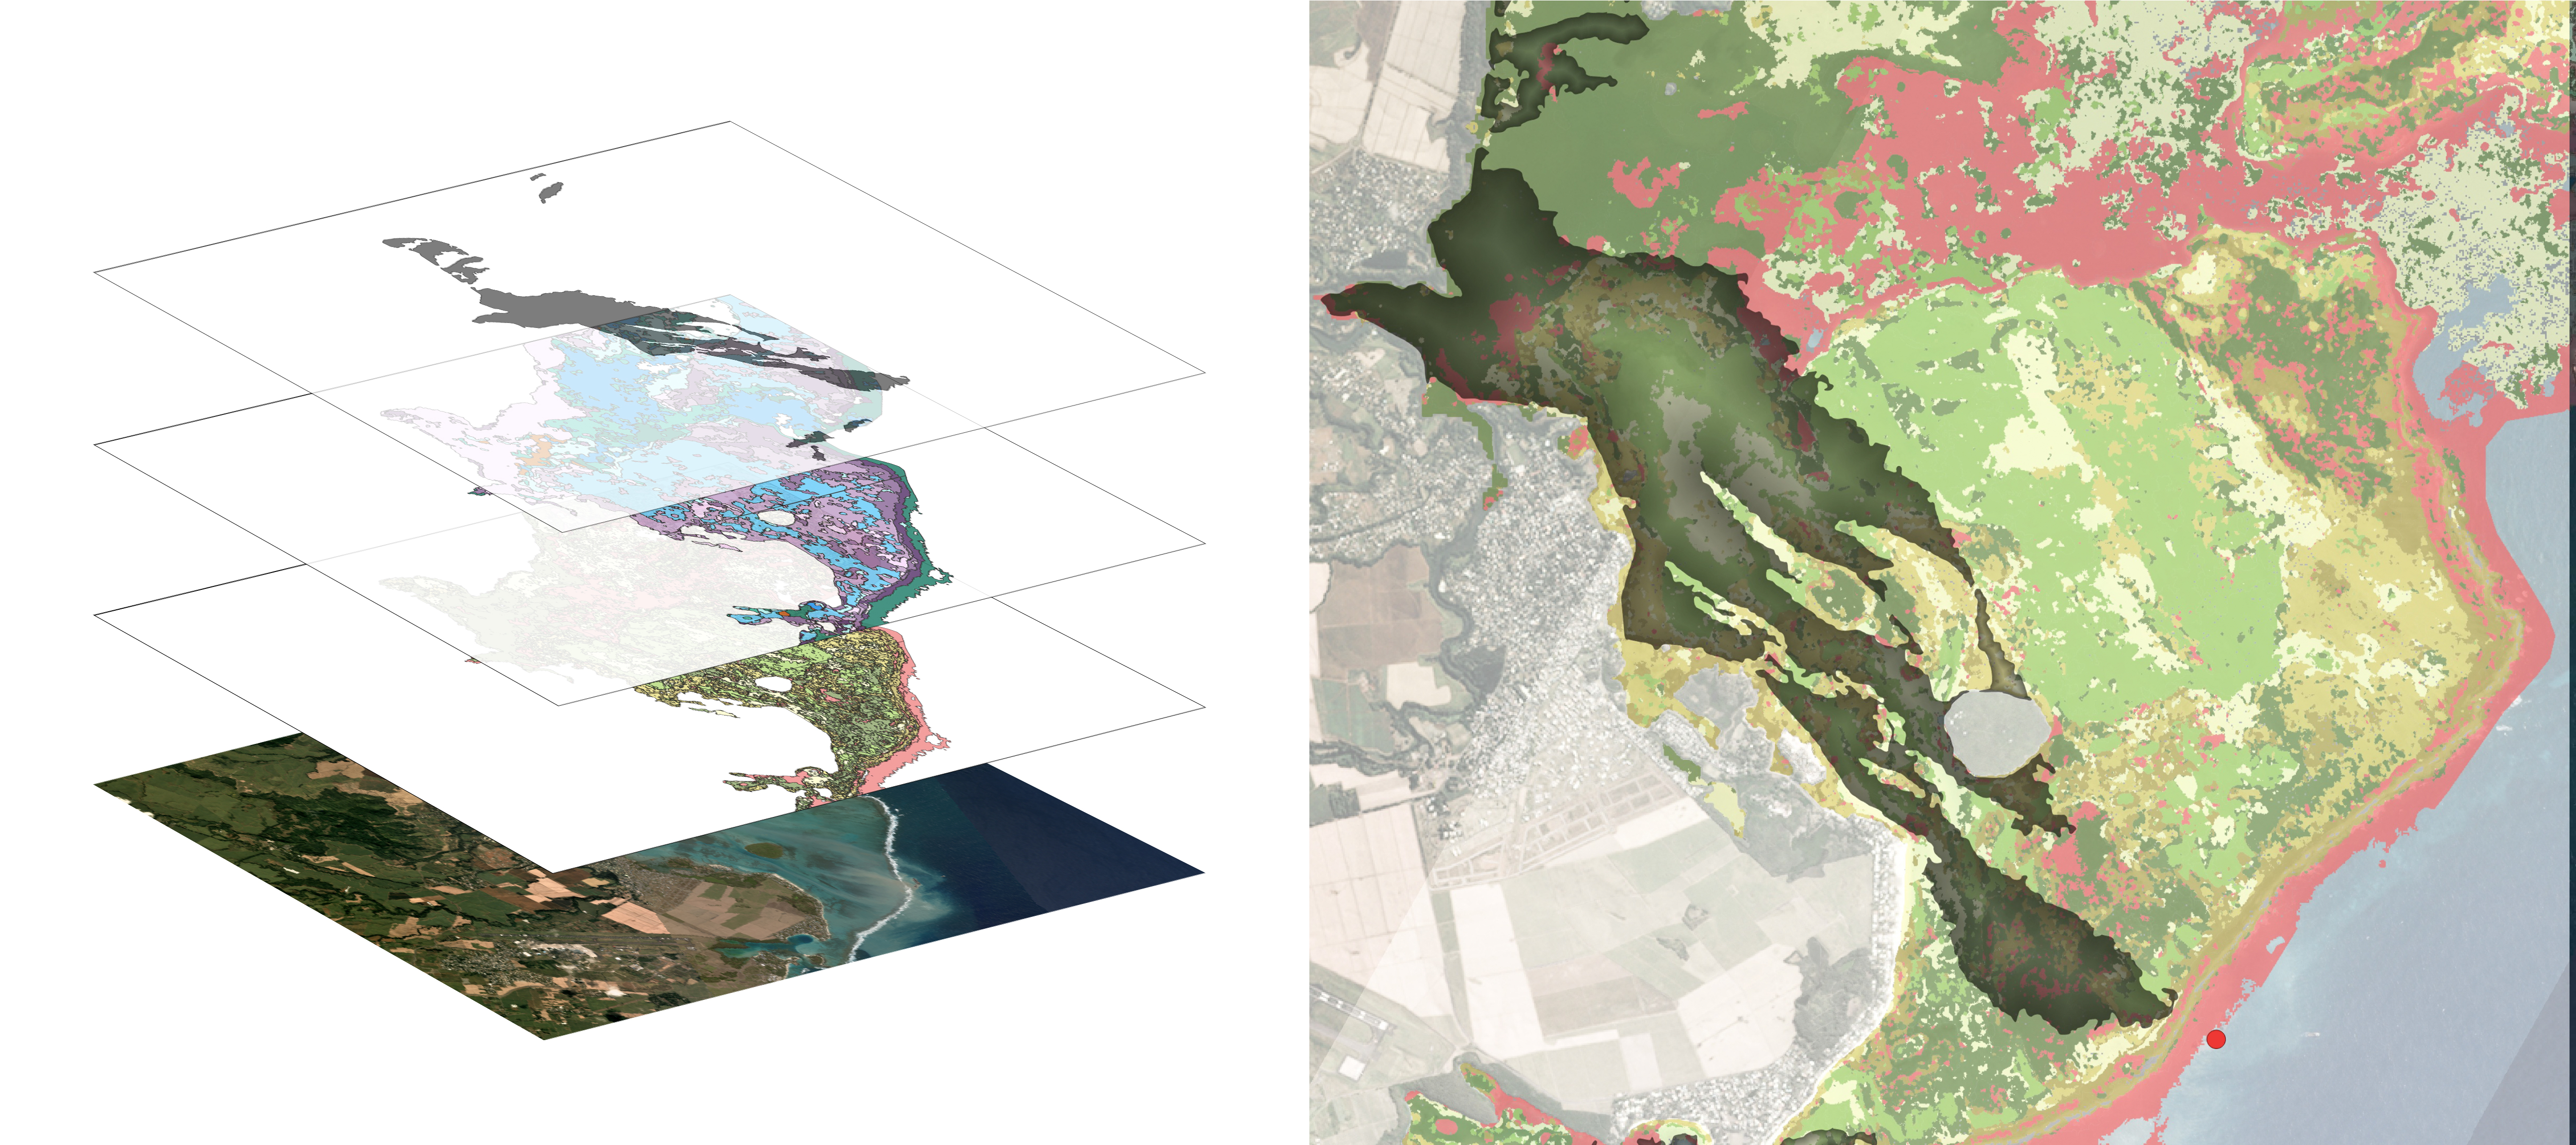 Example data being made available in this release. On the left, separate data layers (from bottom) include Planet SkySat 50 cm optical satellite imagery; benthic and geomorphic imagery from the Allen Coral Atlas; and Synthetic Aperture Radar (SAR) imagery provided by ICEYE with analysis by Ursa Space Systems. On the right, a combined view. The red dot on the right is the original location of the MV Wakashio. SAR and Planet imagery used in this illustration are dated August 16, 2020.